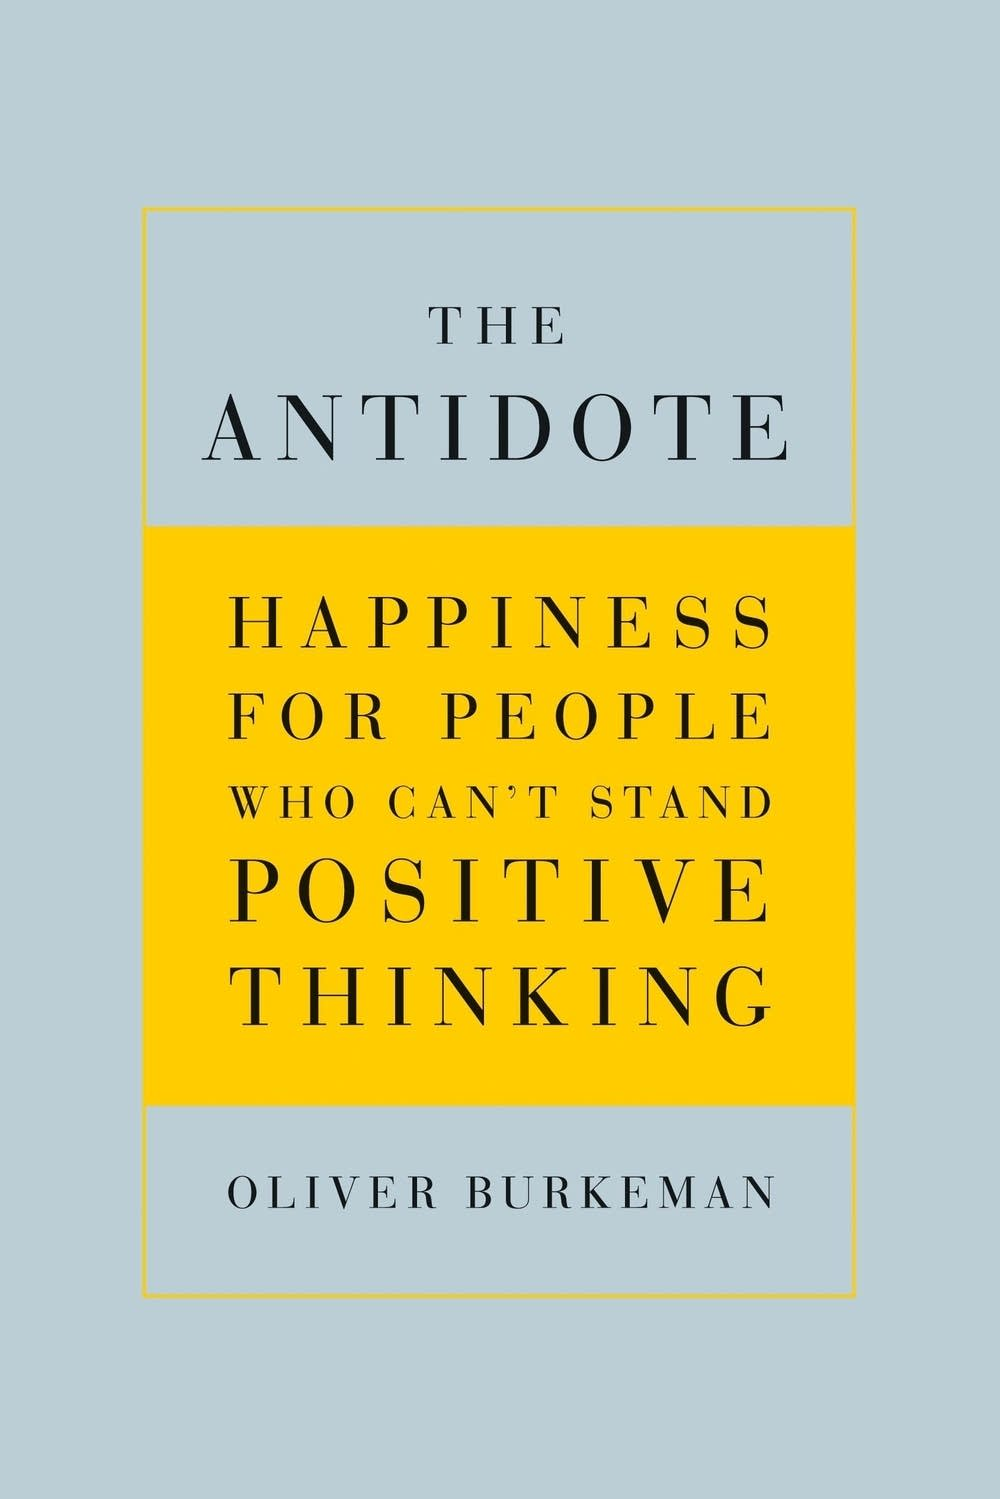 'The Antidote' by Oliver Burkeman